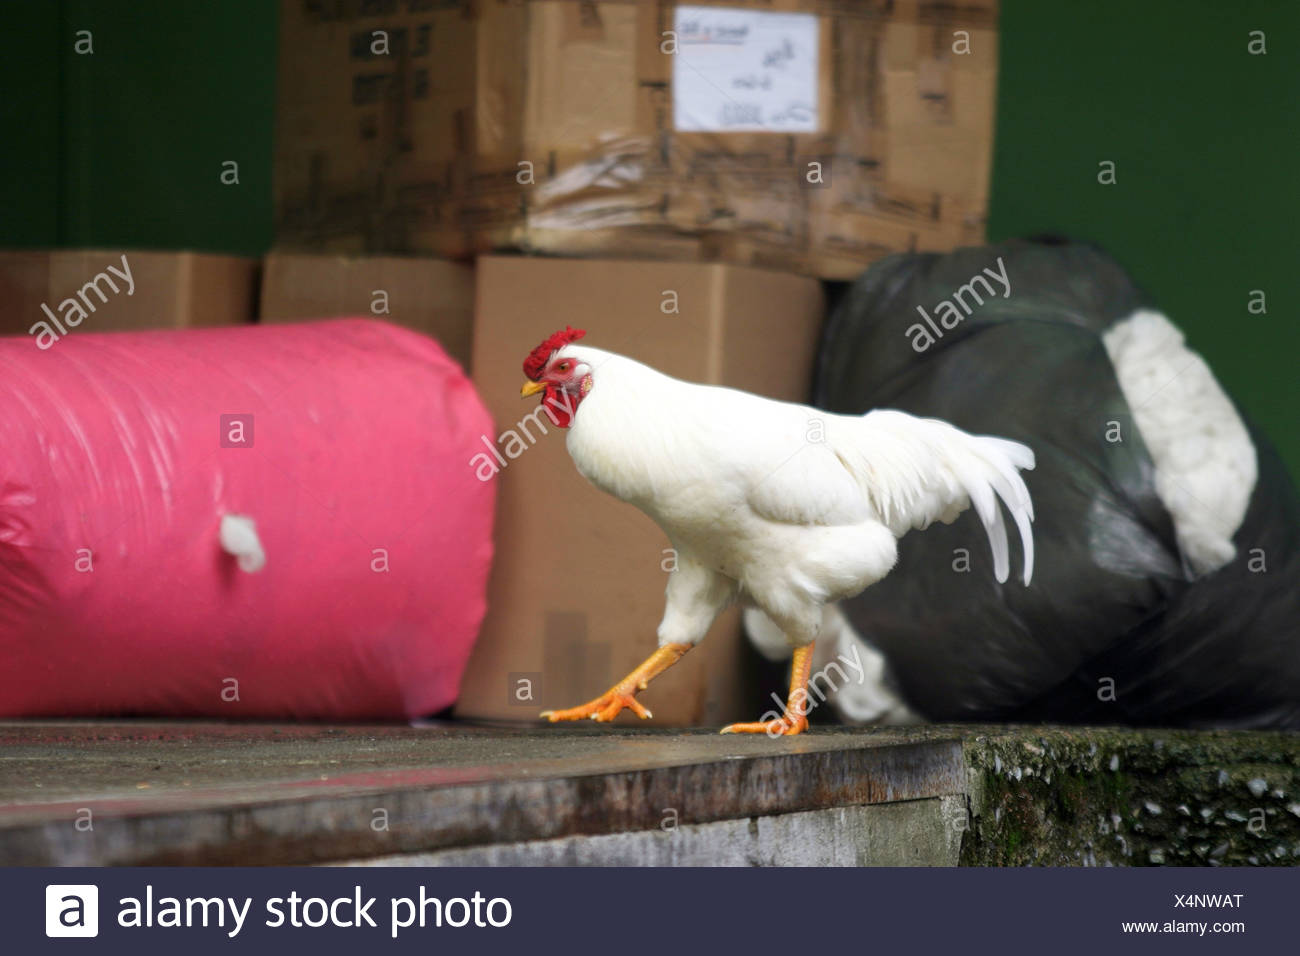 White Rooster - Stock Image